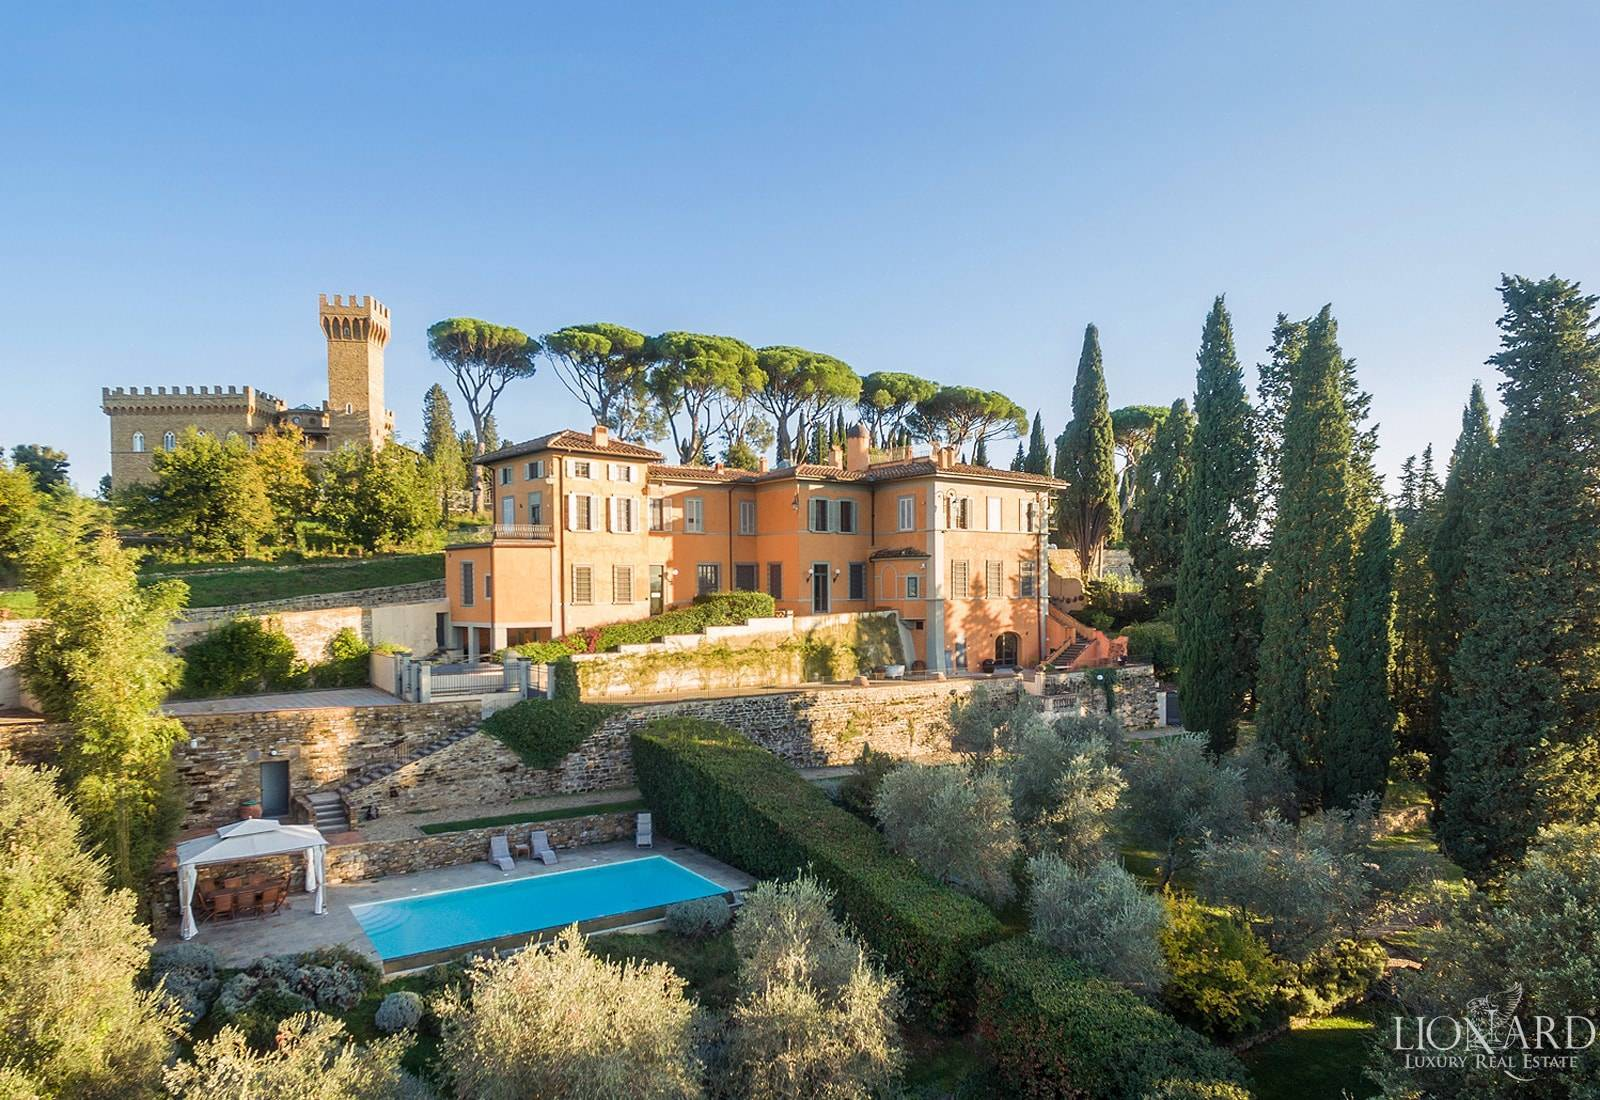 Villa with swimming pool for sale in Florence